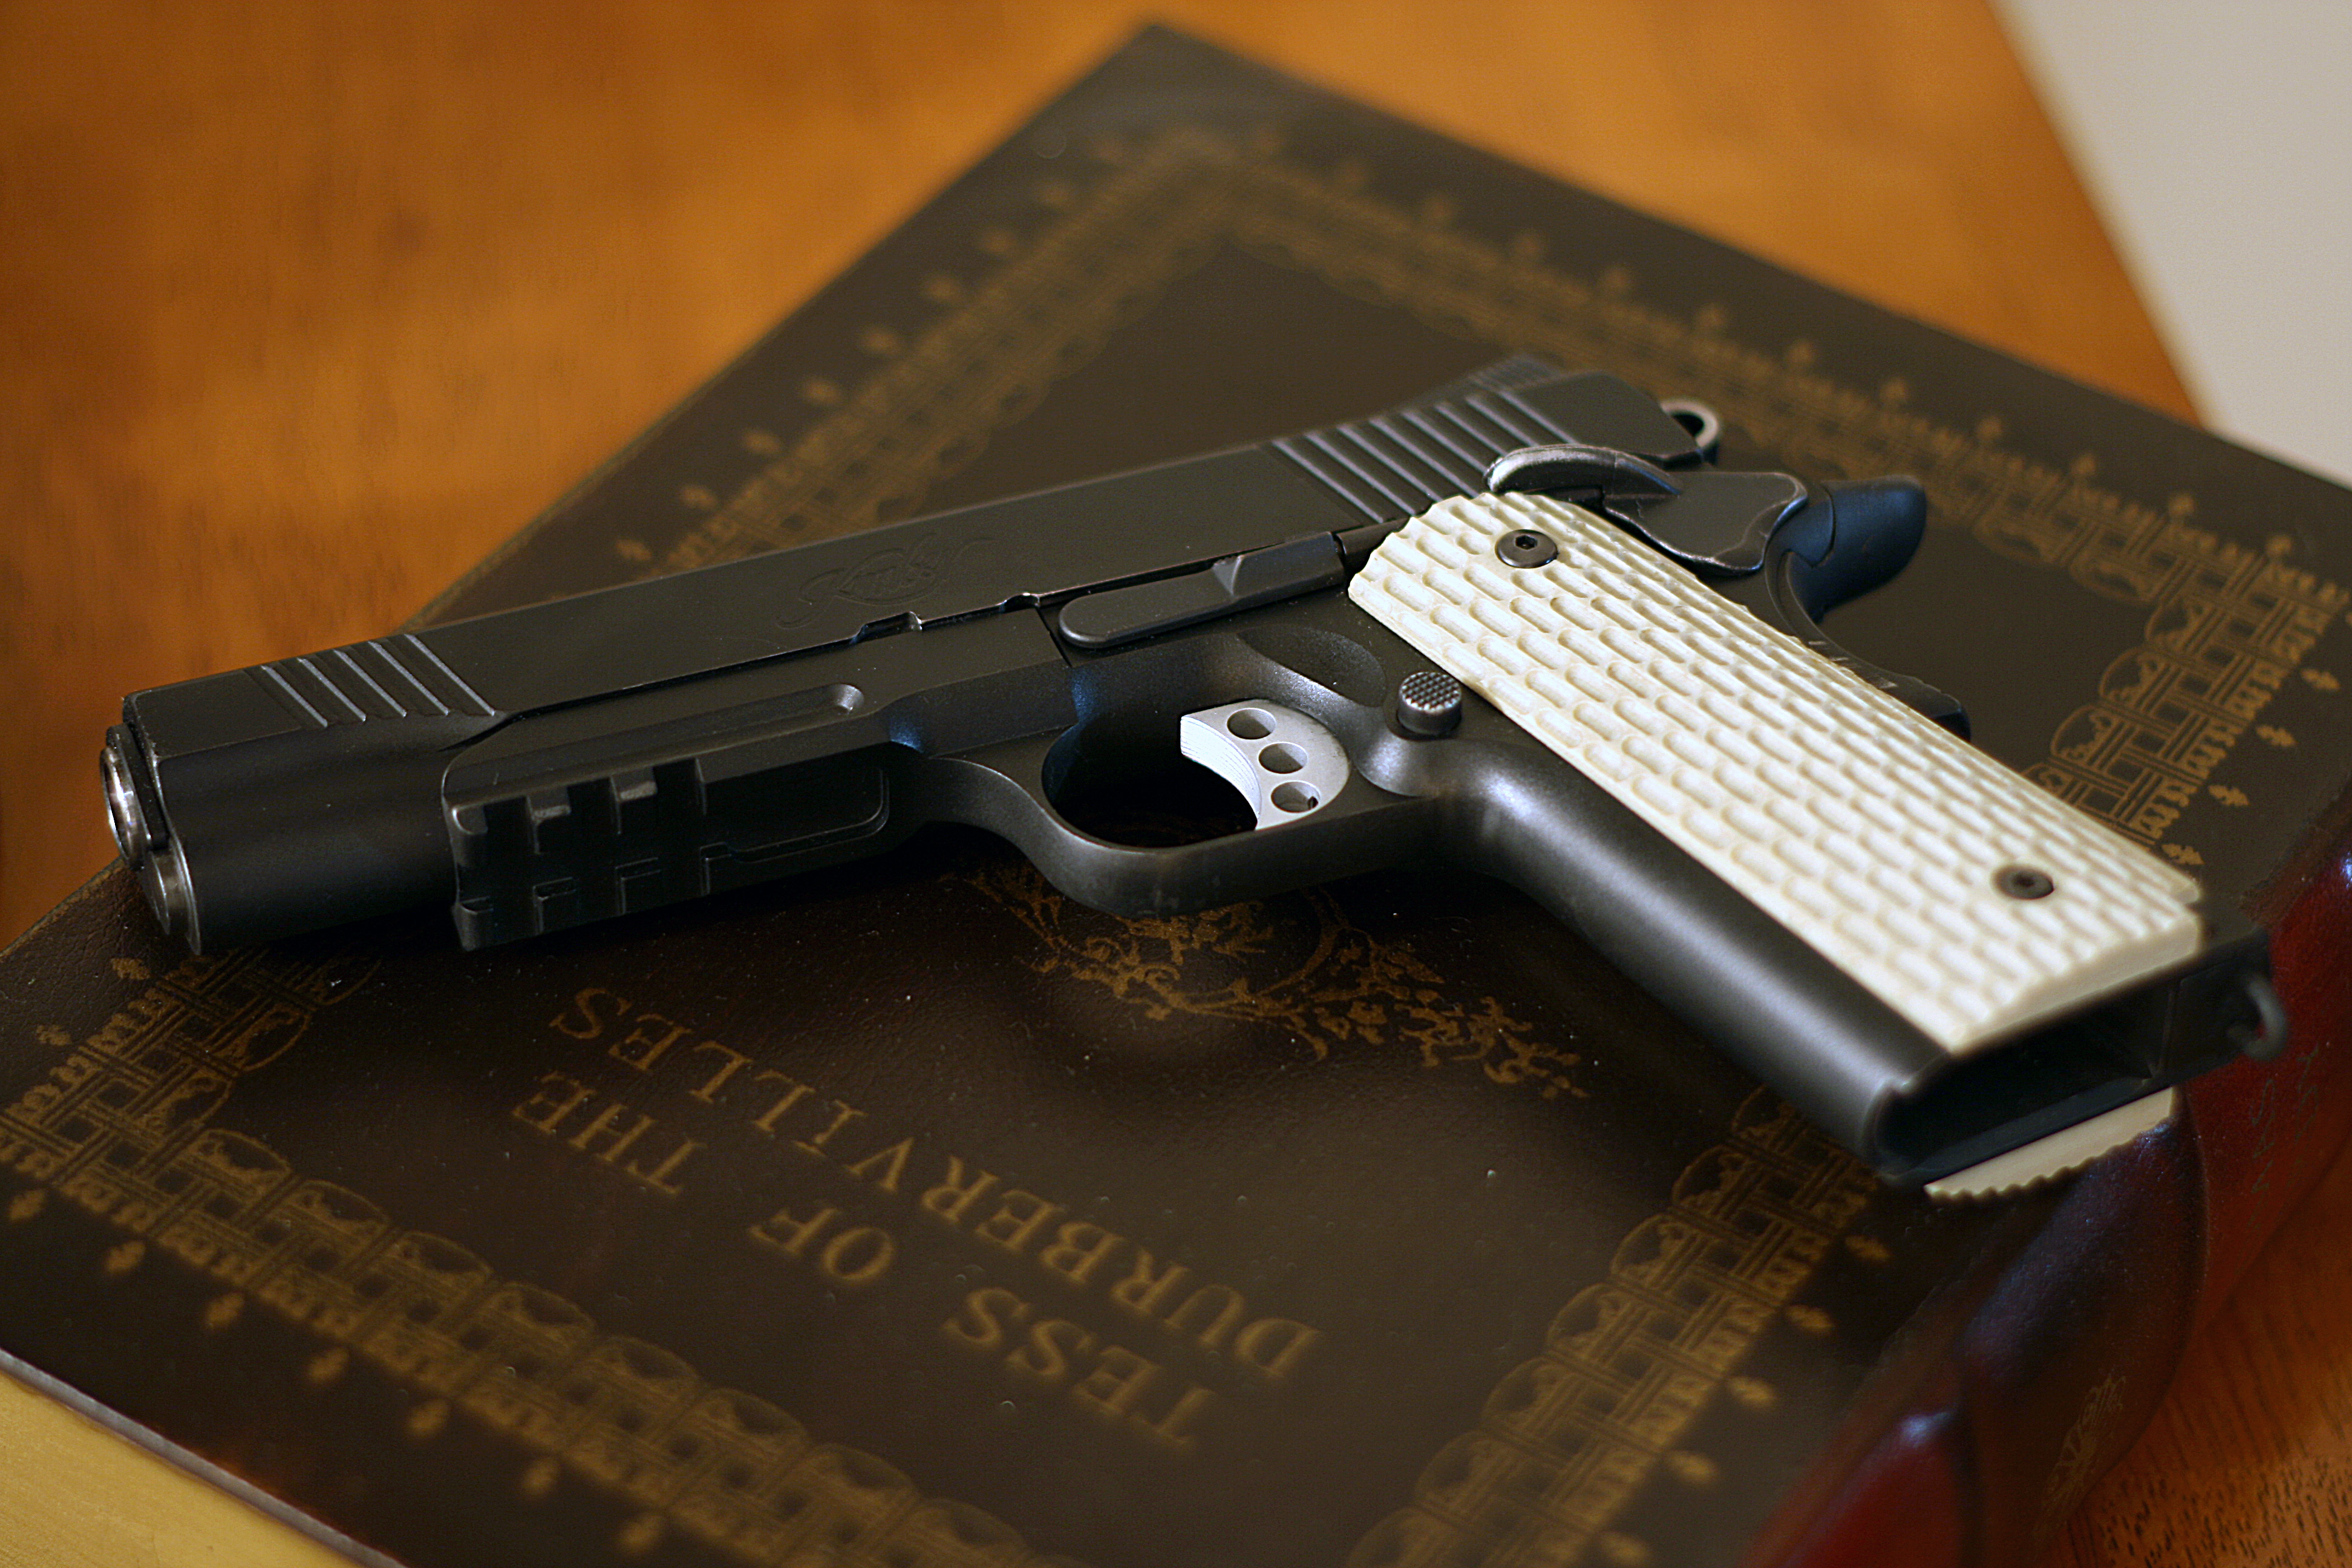 50] Kimber 1911 Wallpaper on WallpaperSafari 3888x2592